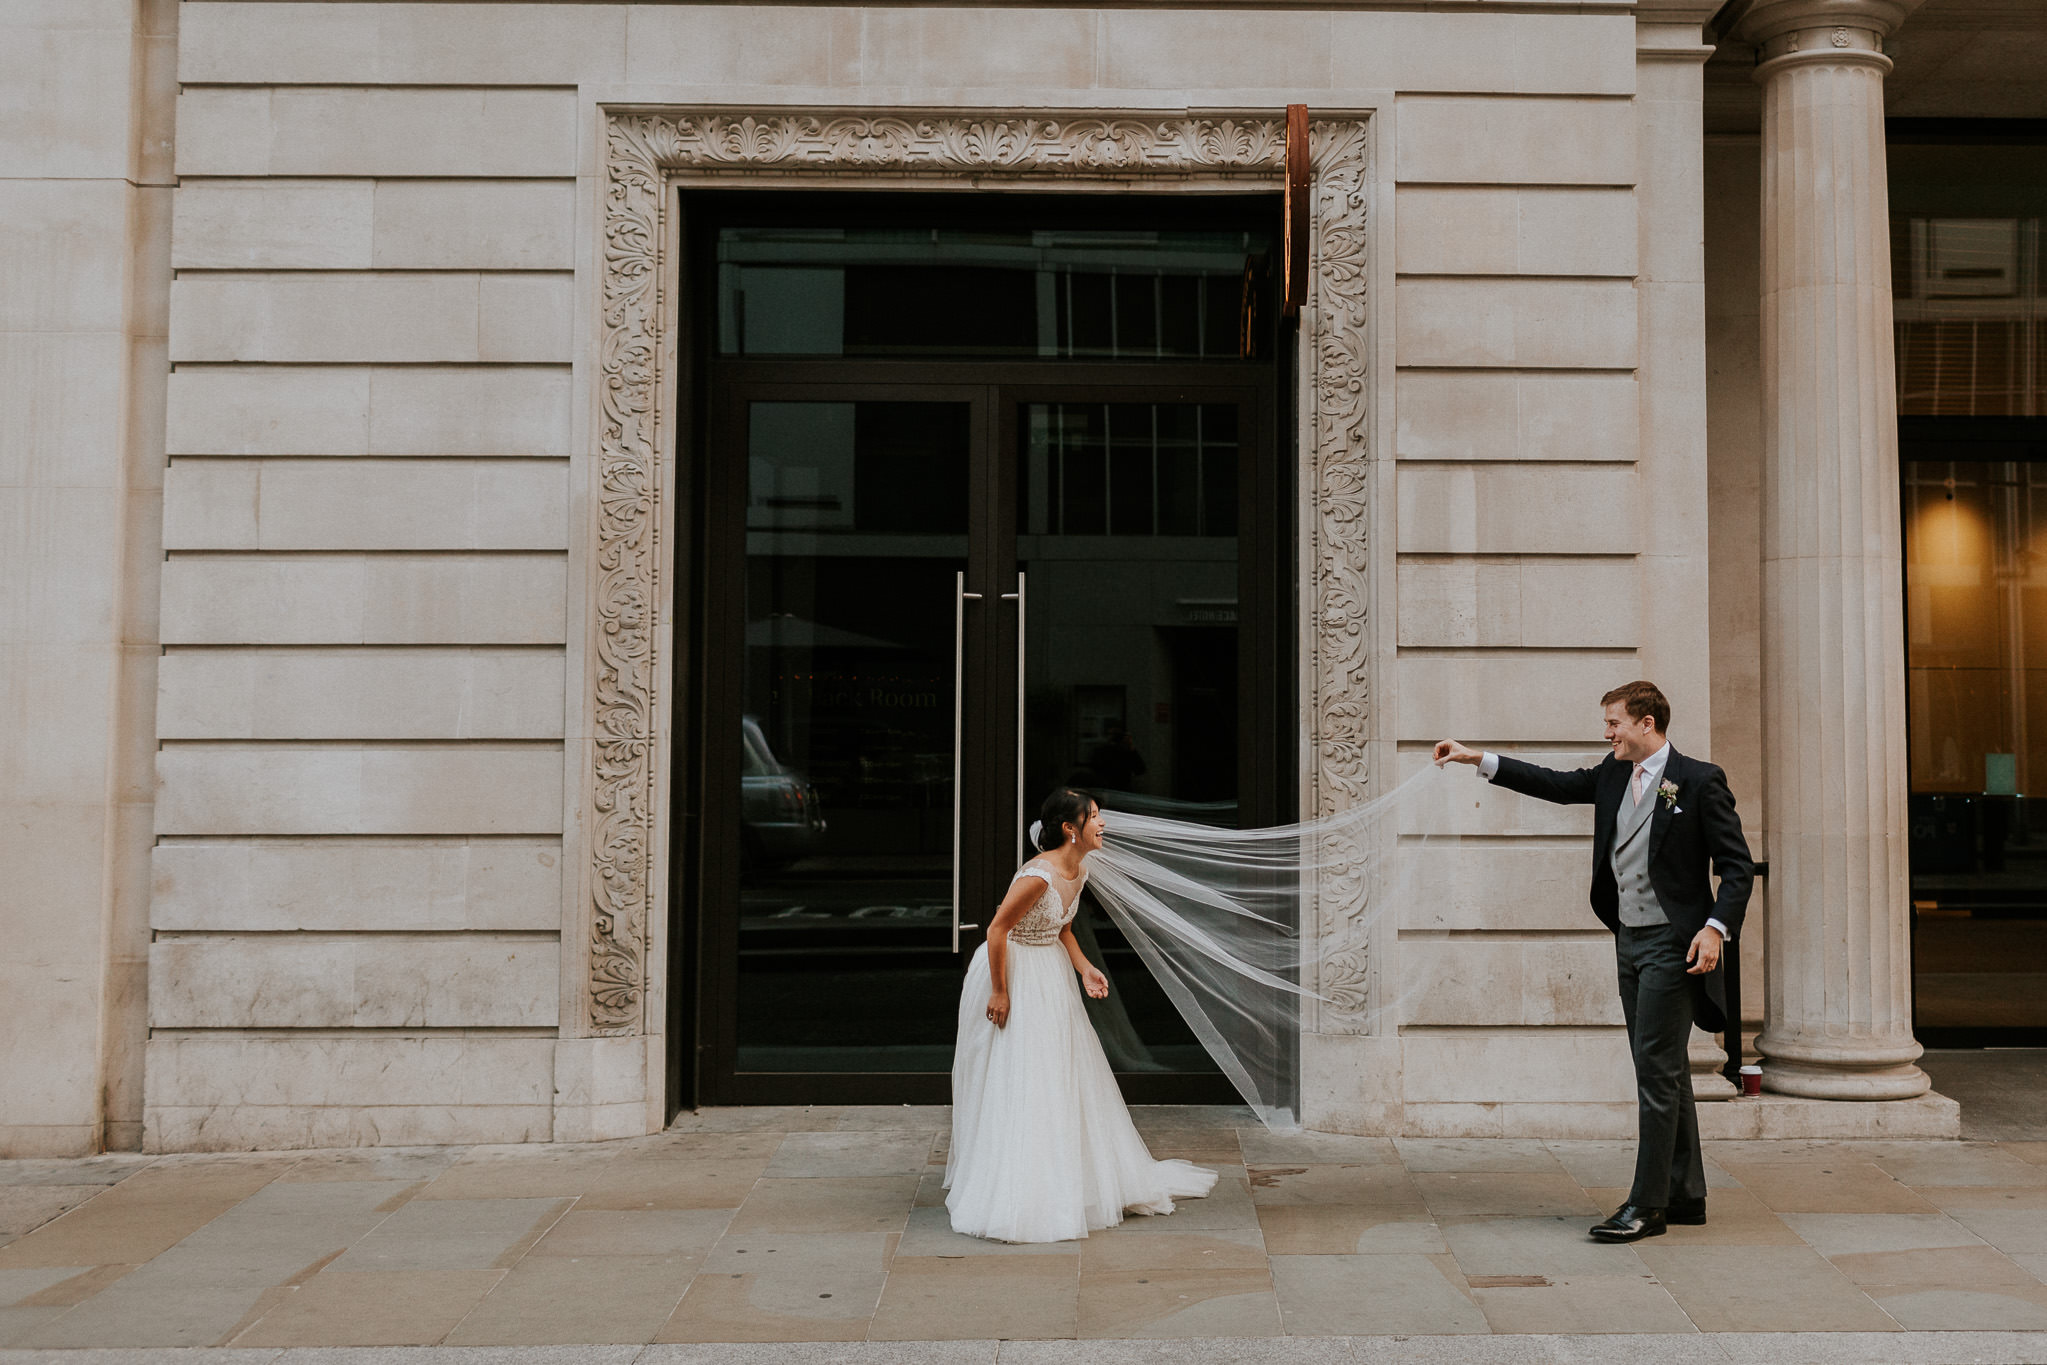 london city wedding photographer